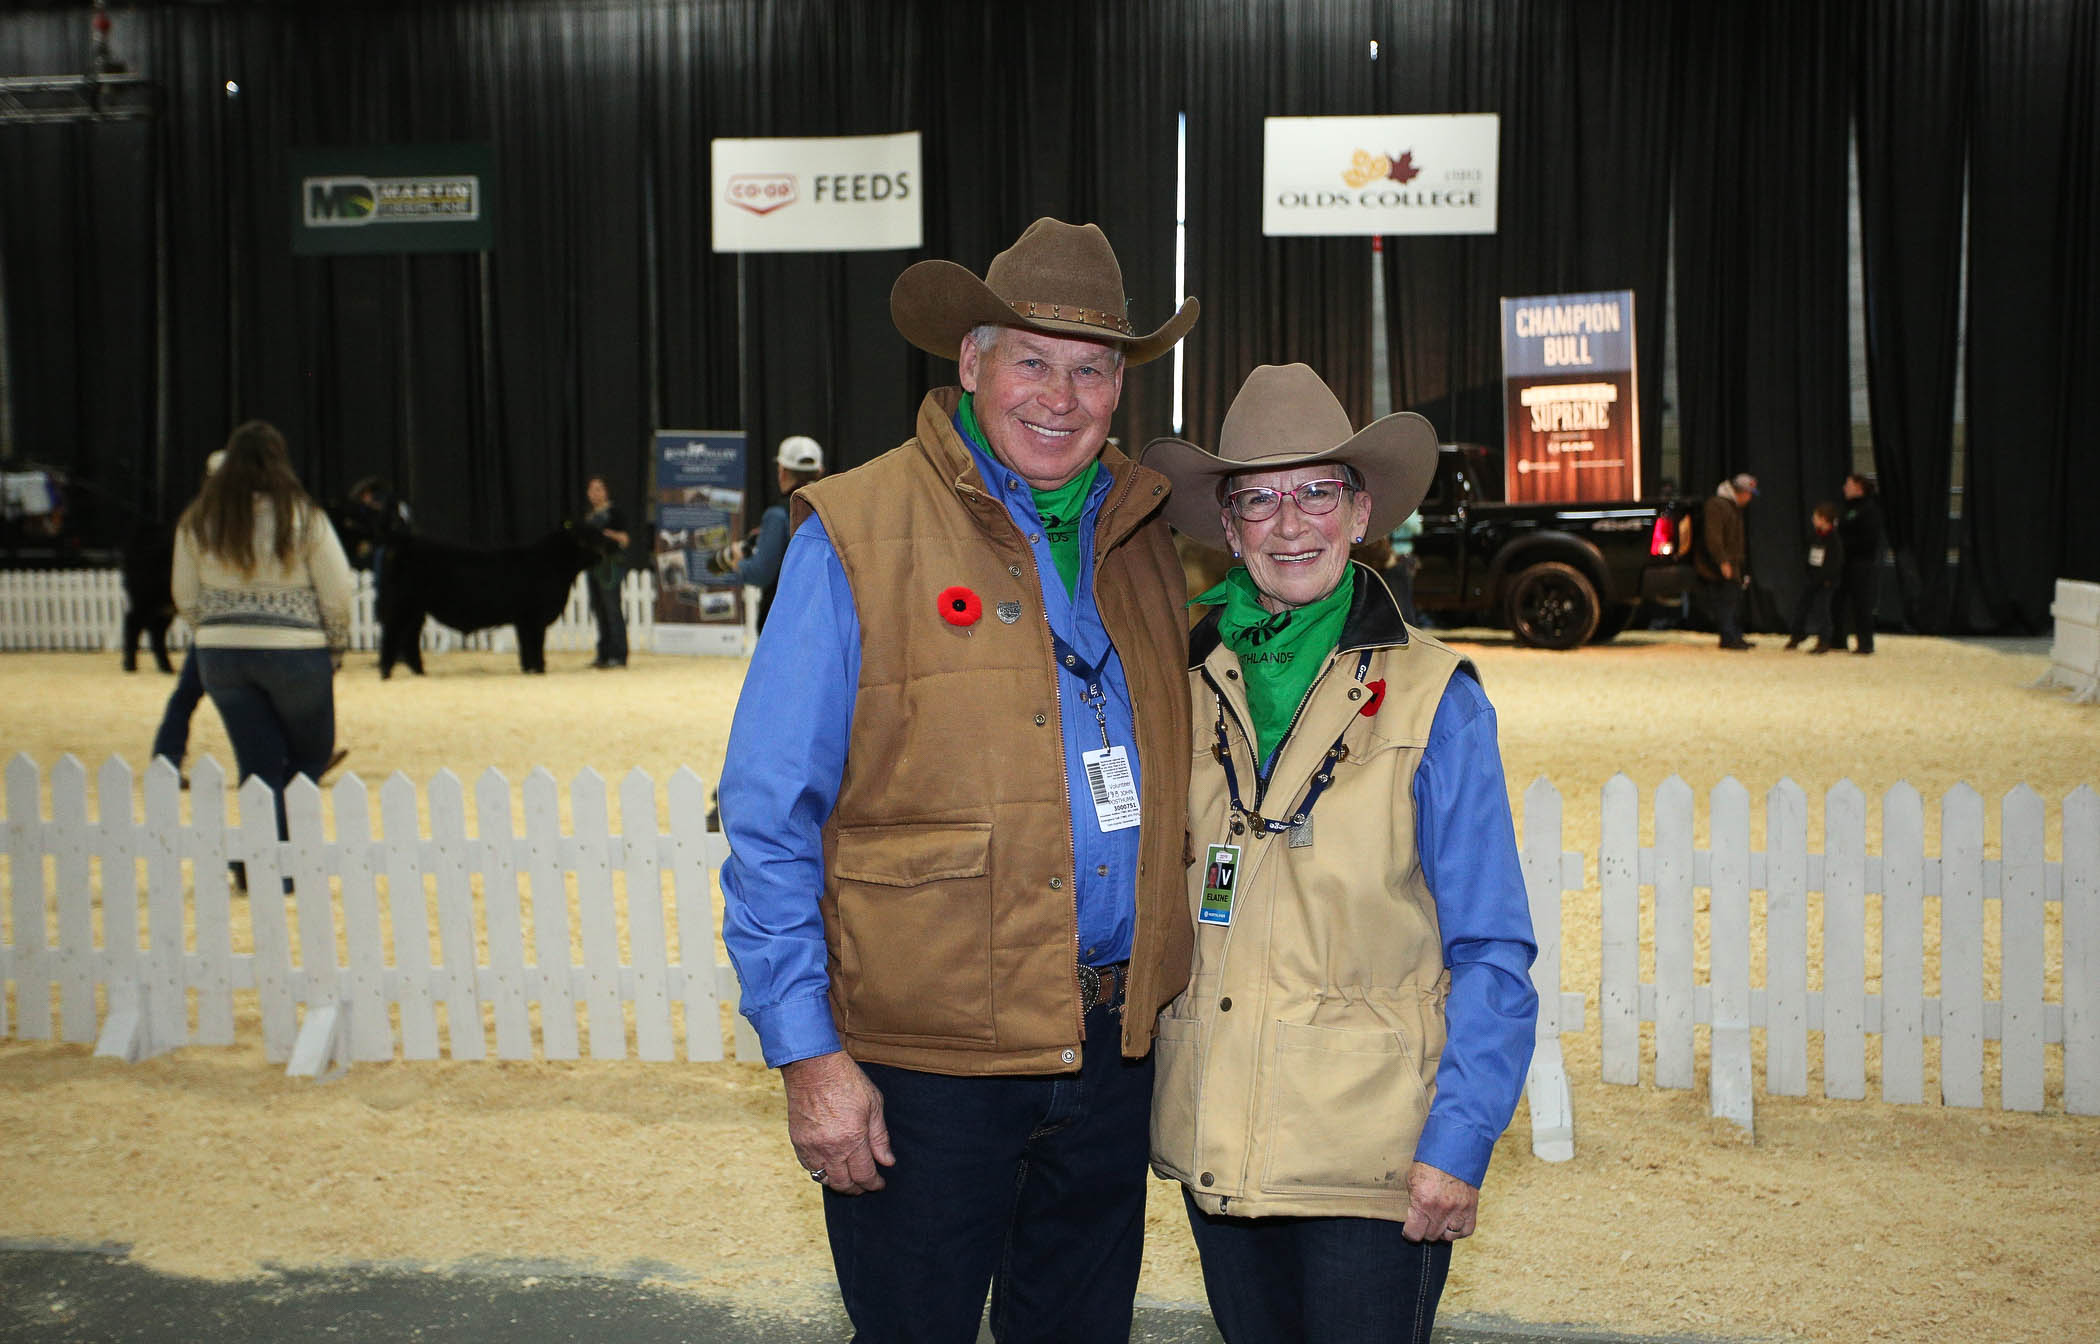 Volunteers at Farmfair International